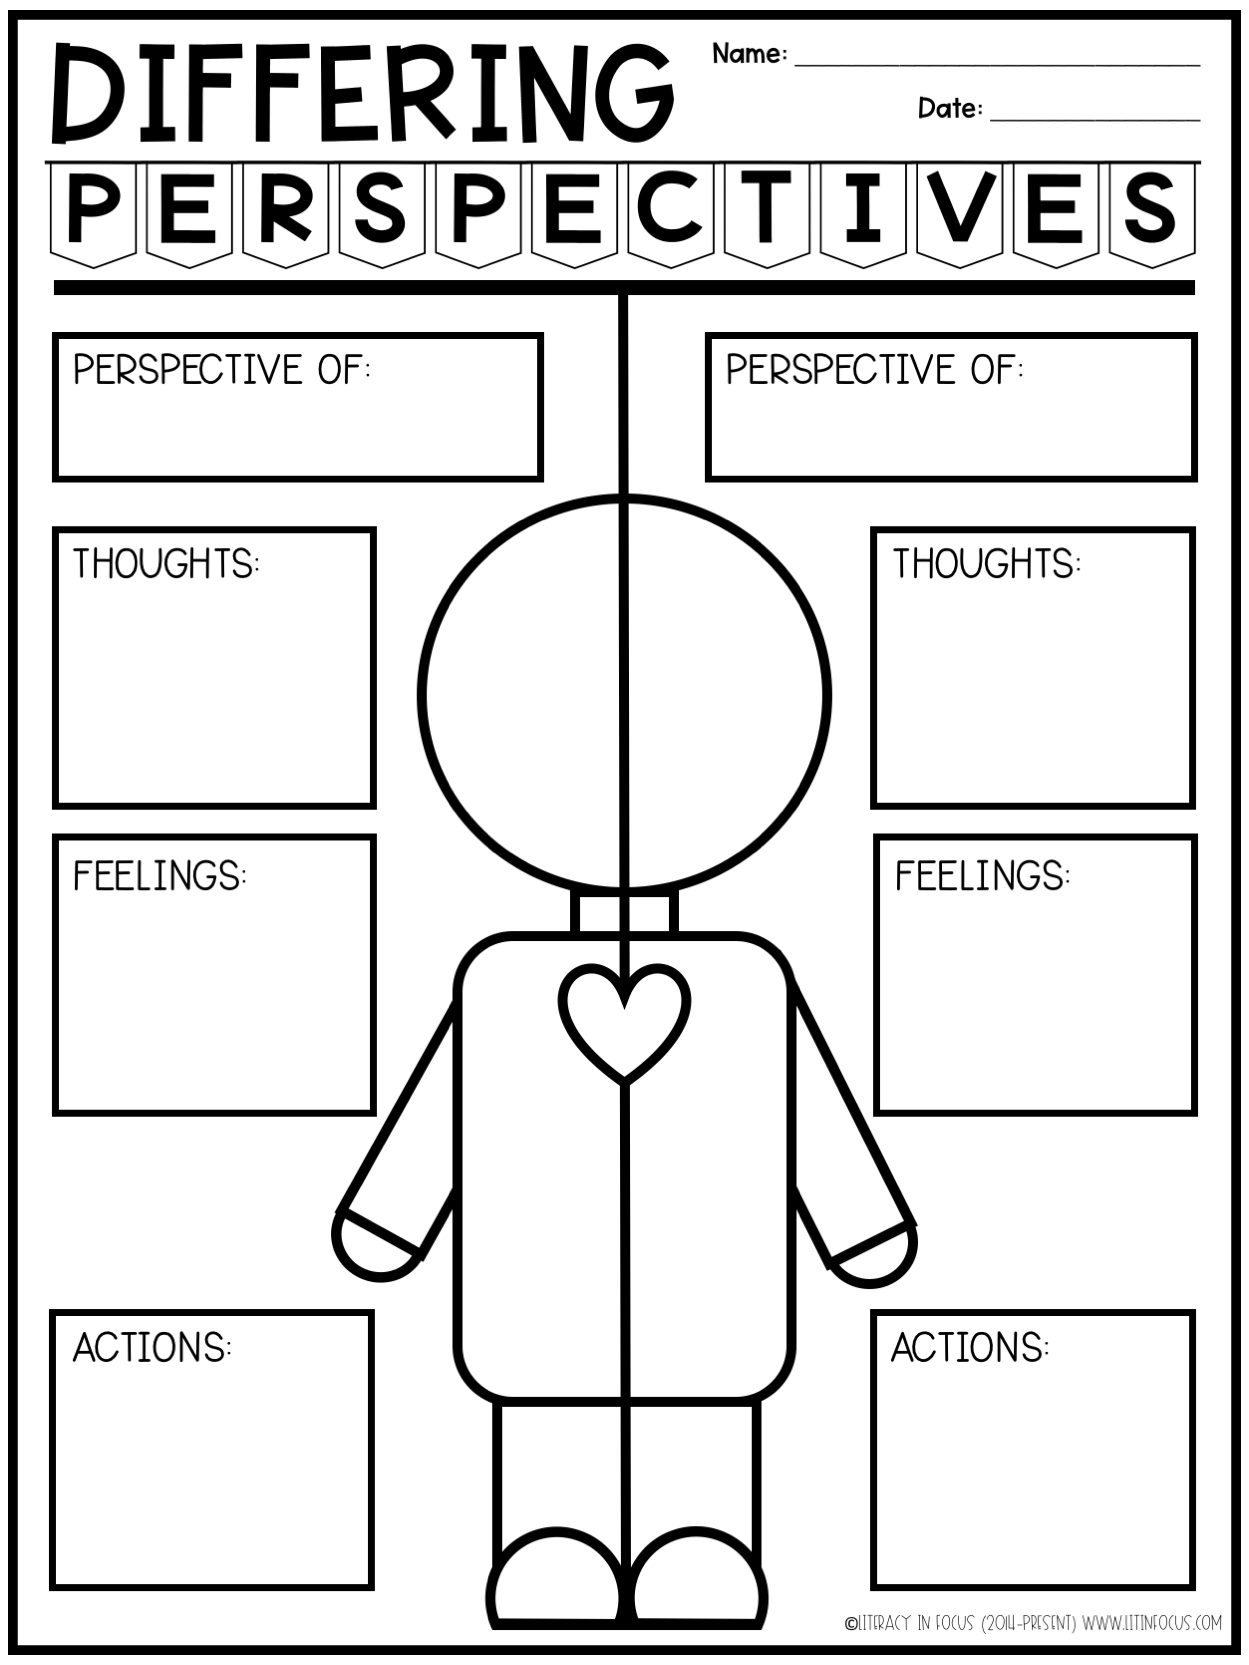 5 Key Reasons To Teach Differing Perspectives